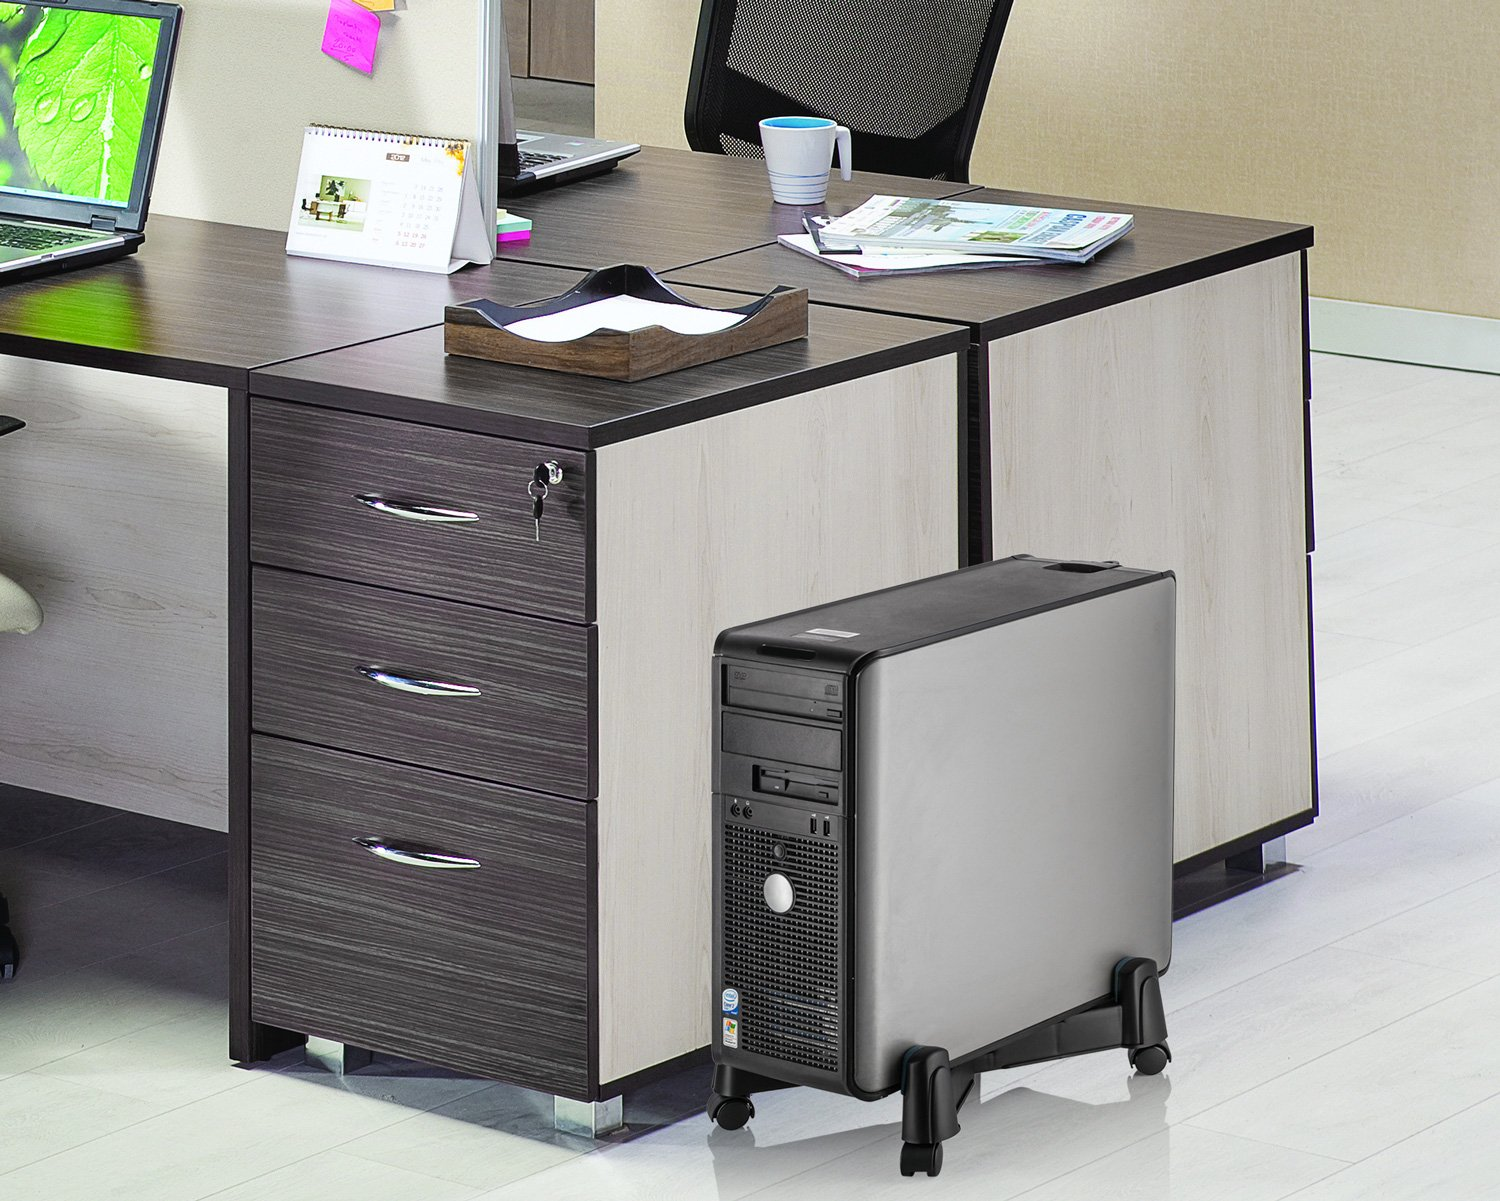 Halter LZ-401 PC Computer Stand Case Caddy for Desktop//Tower Cases with Adjustable Width and 4 Caster Rolling Wheels